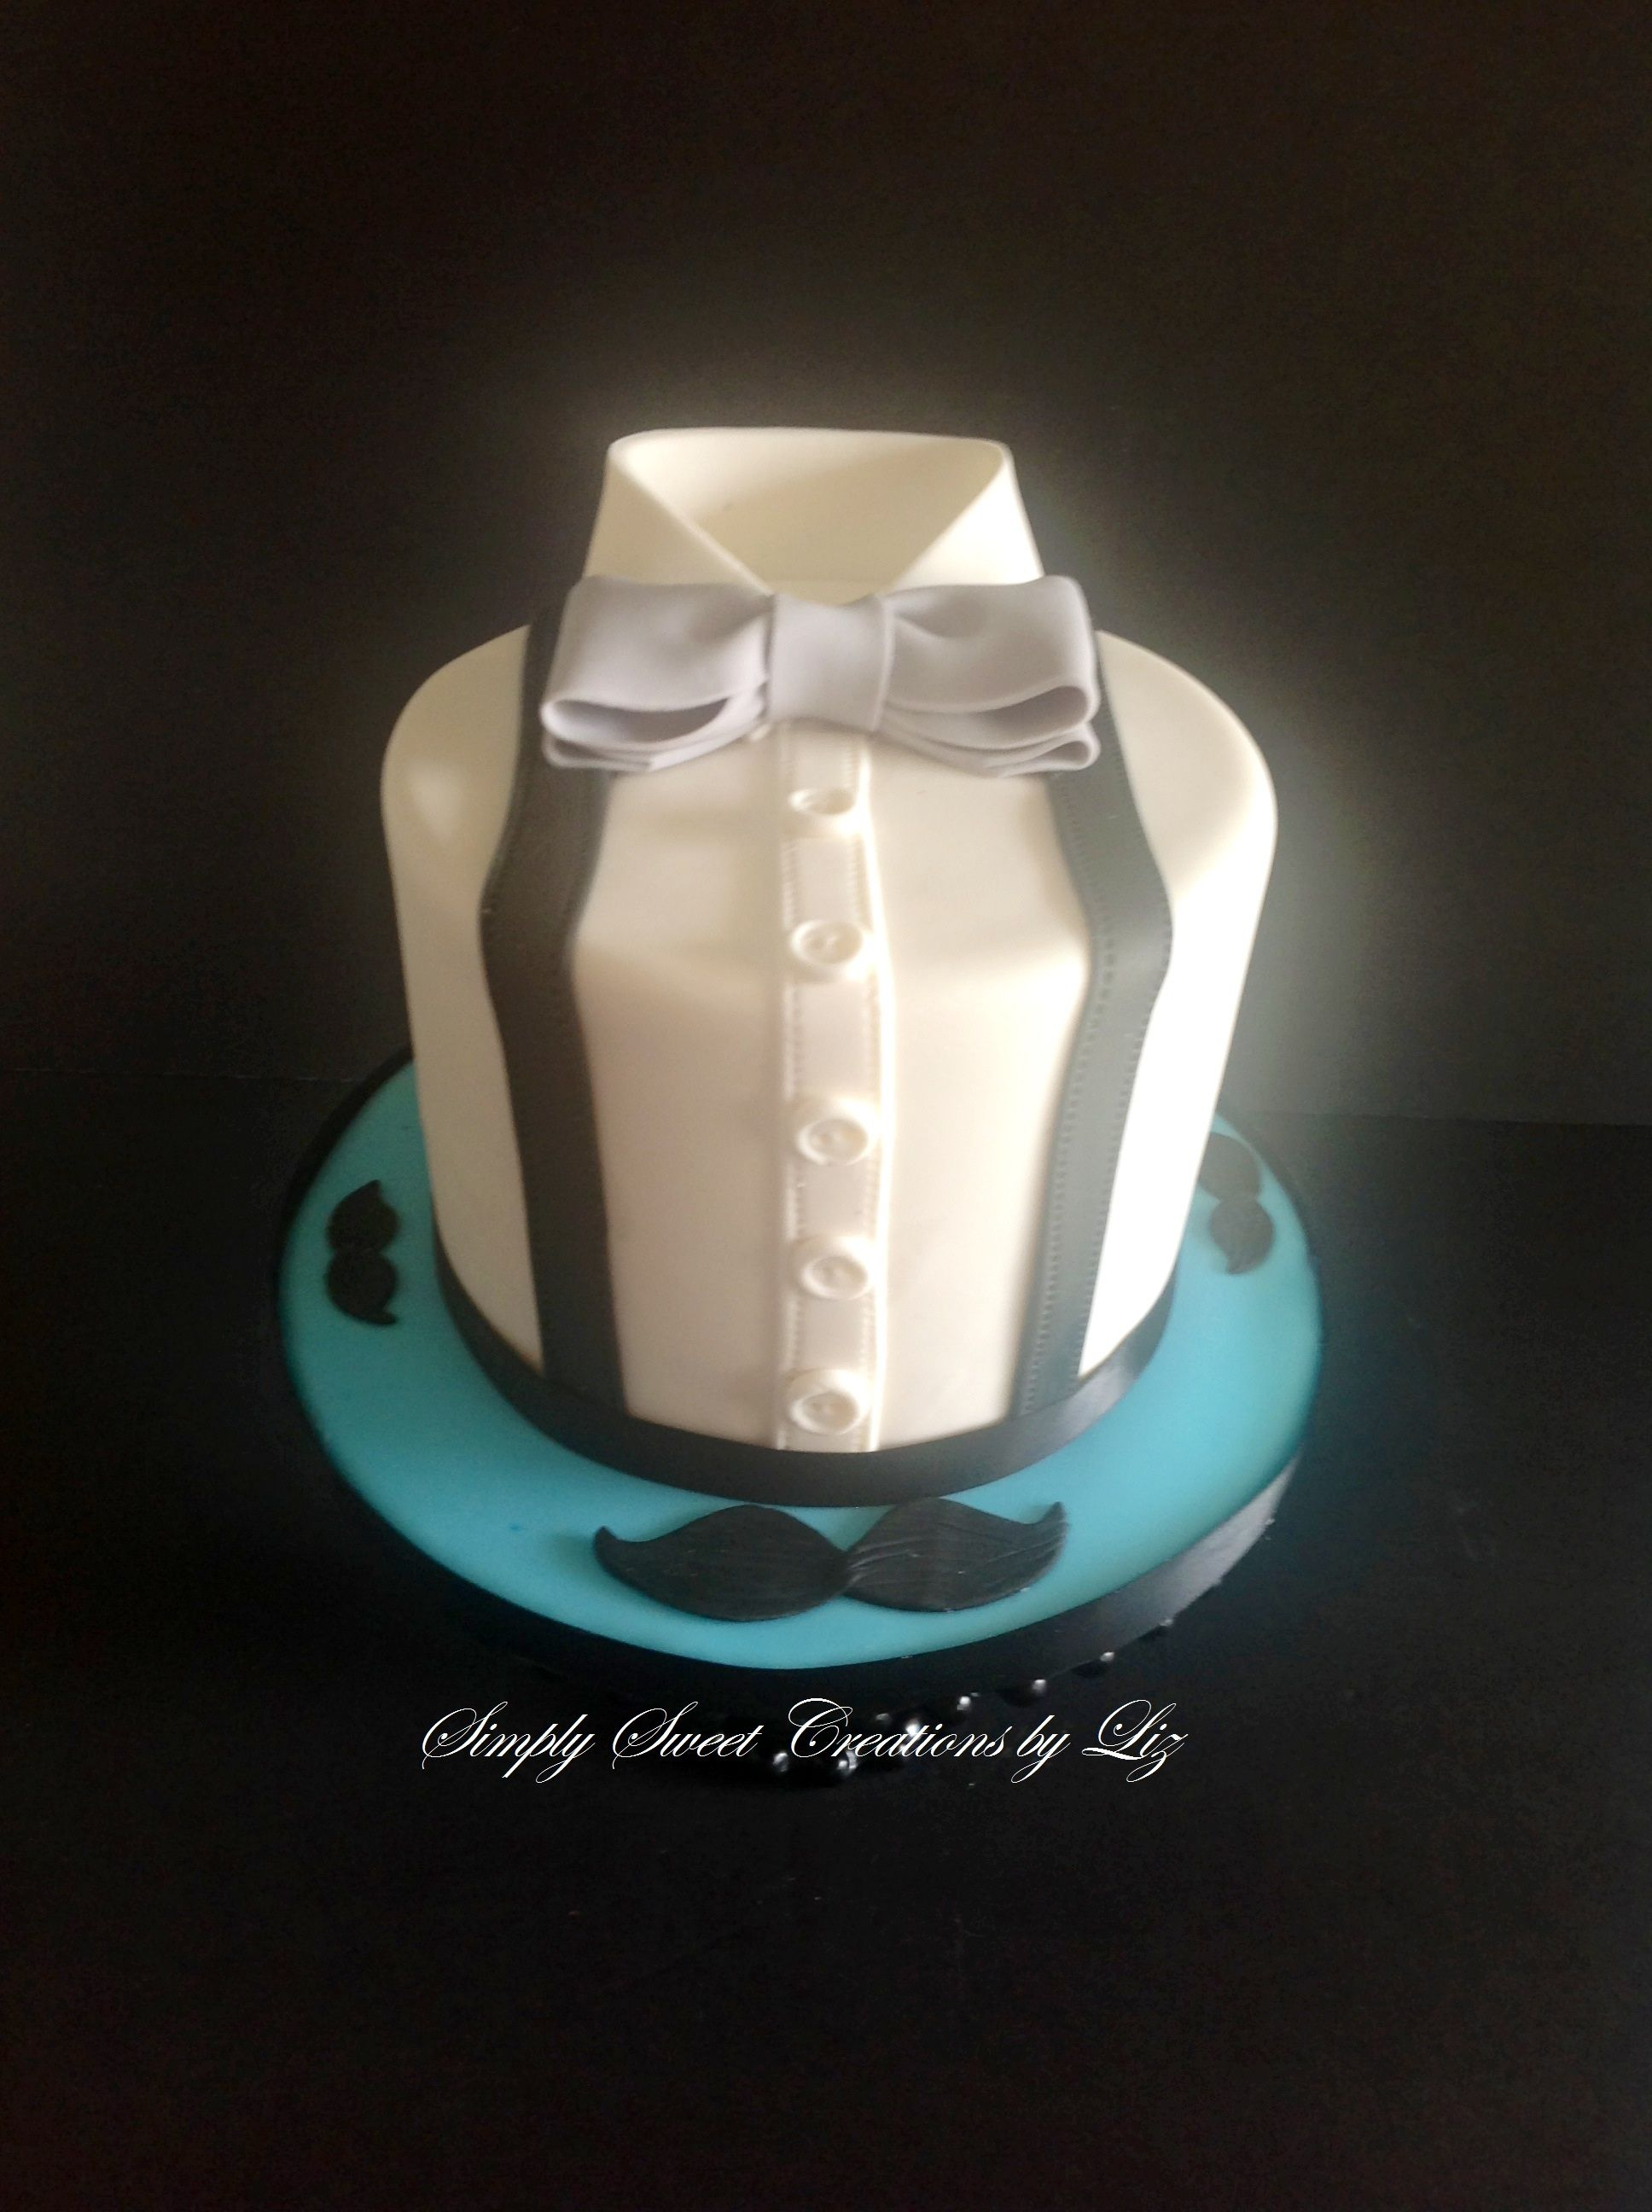 Bow Tie And Mustache Cake Art Birthday Cake